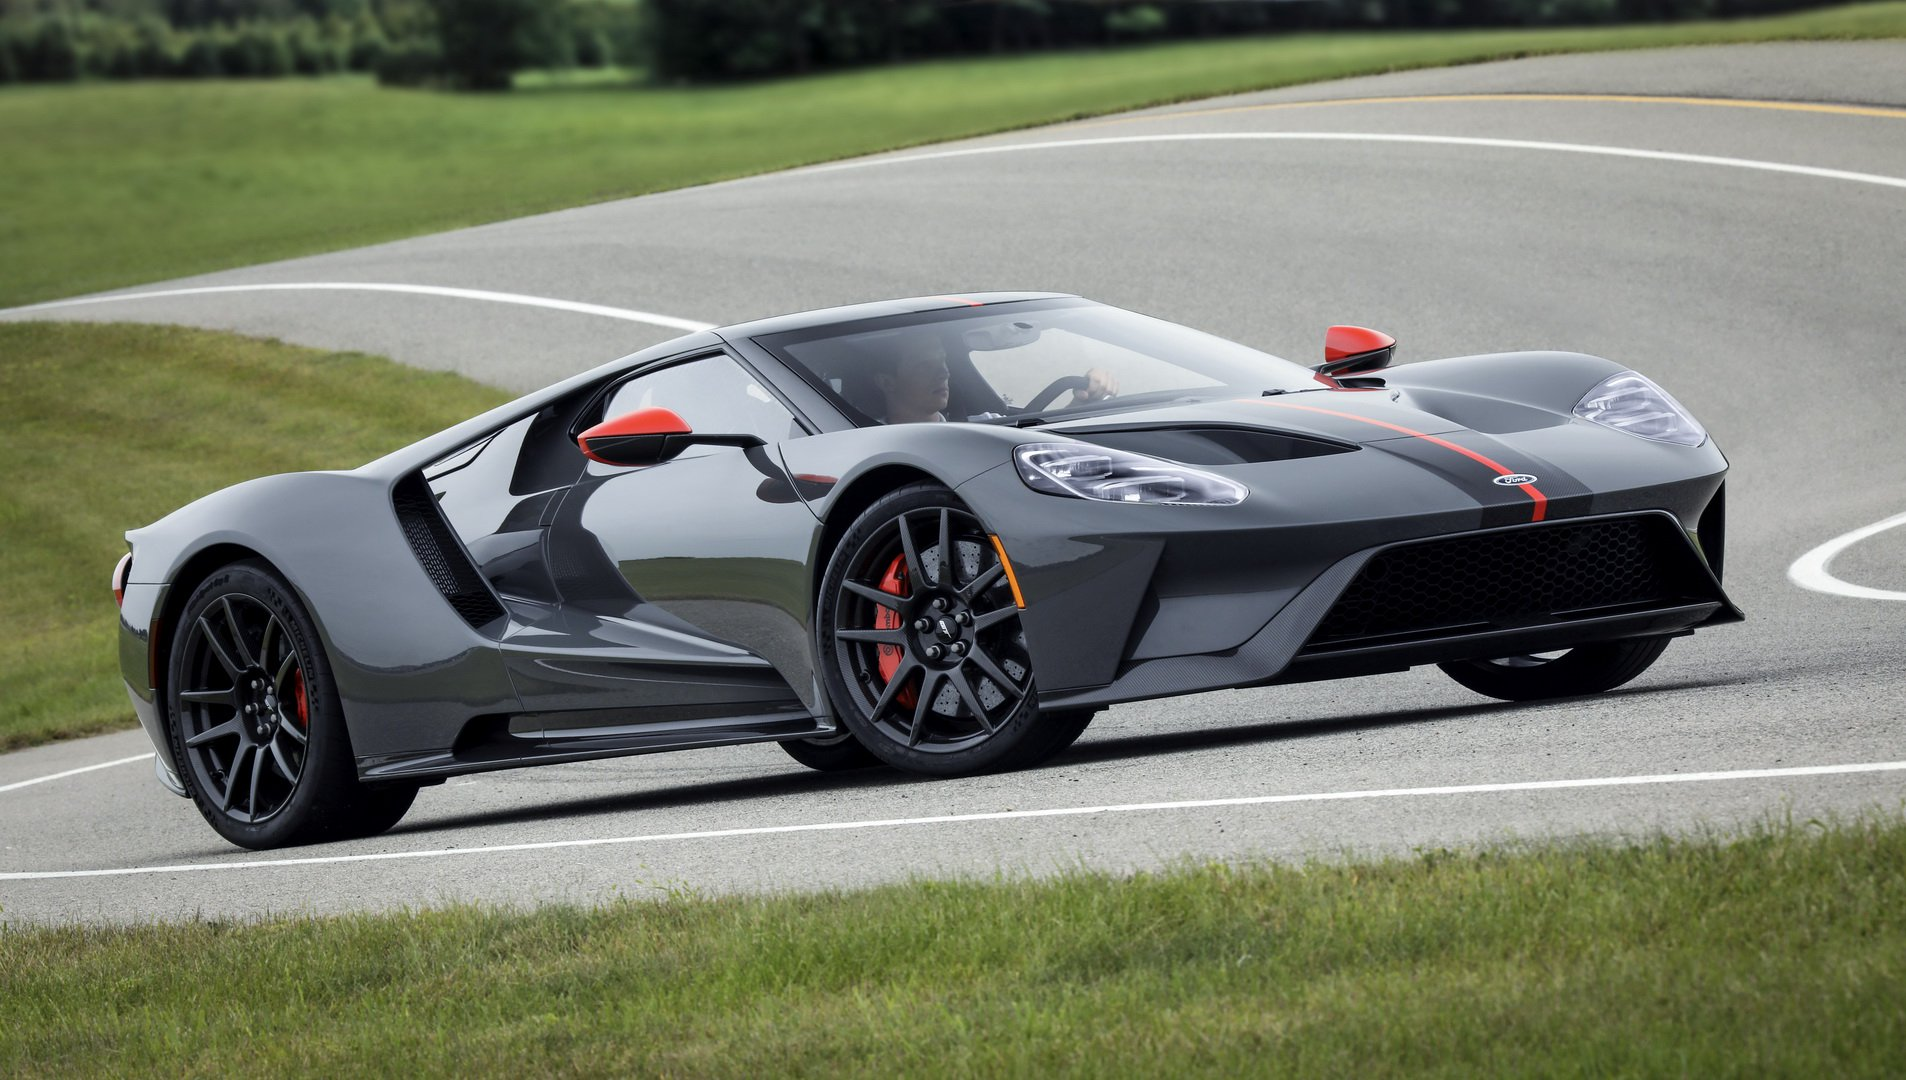 2019-ford-gt-carbon-series-3.jpg